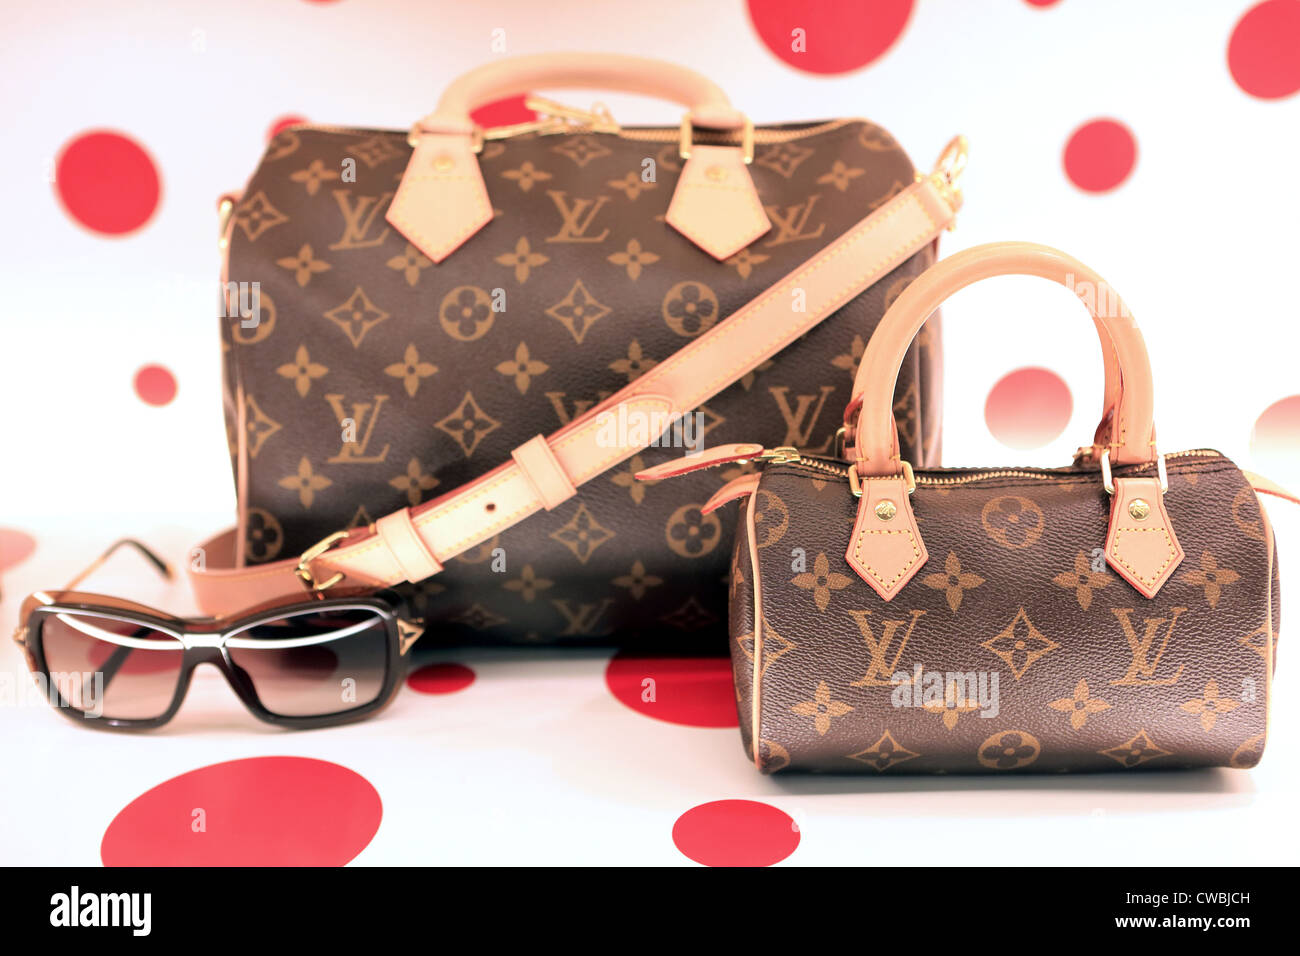 d6c80de47ee8 Louis Vuitton designer handbags and sunglasses for sale in shopping mall.